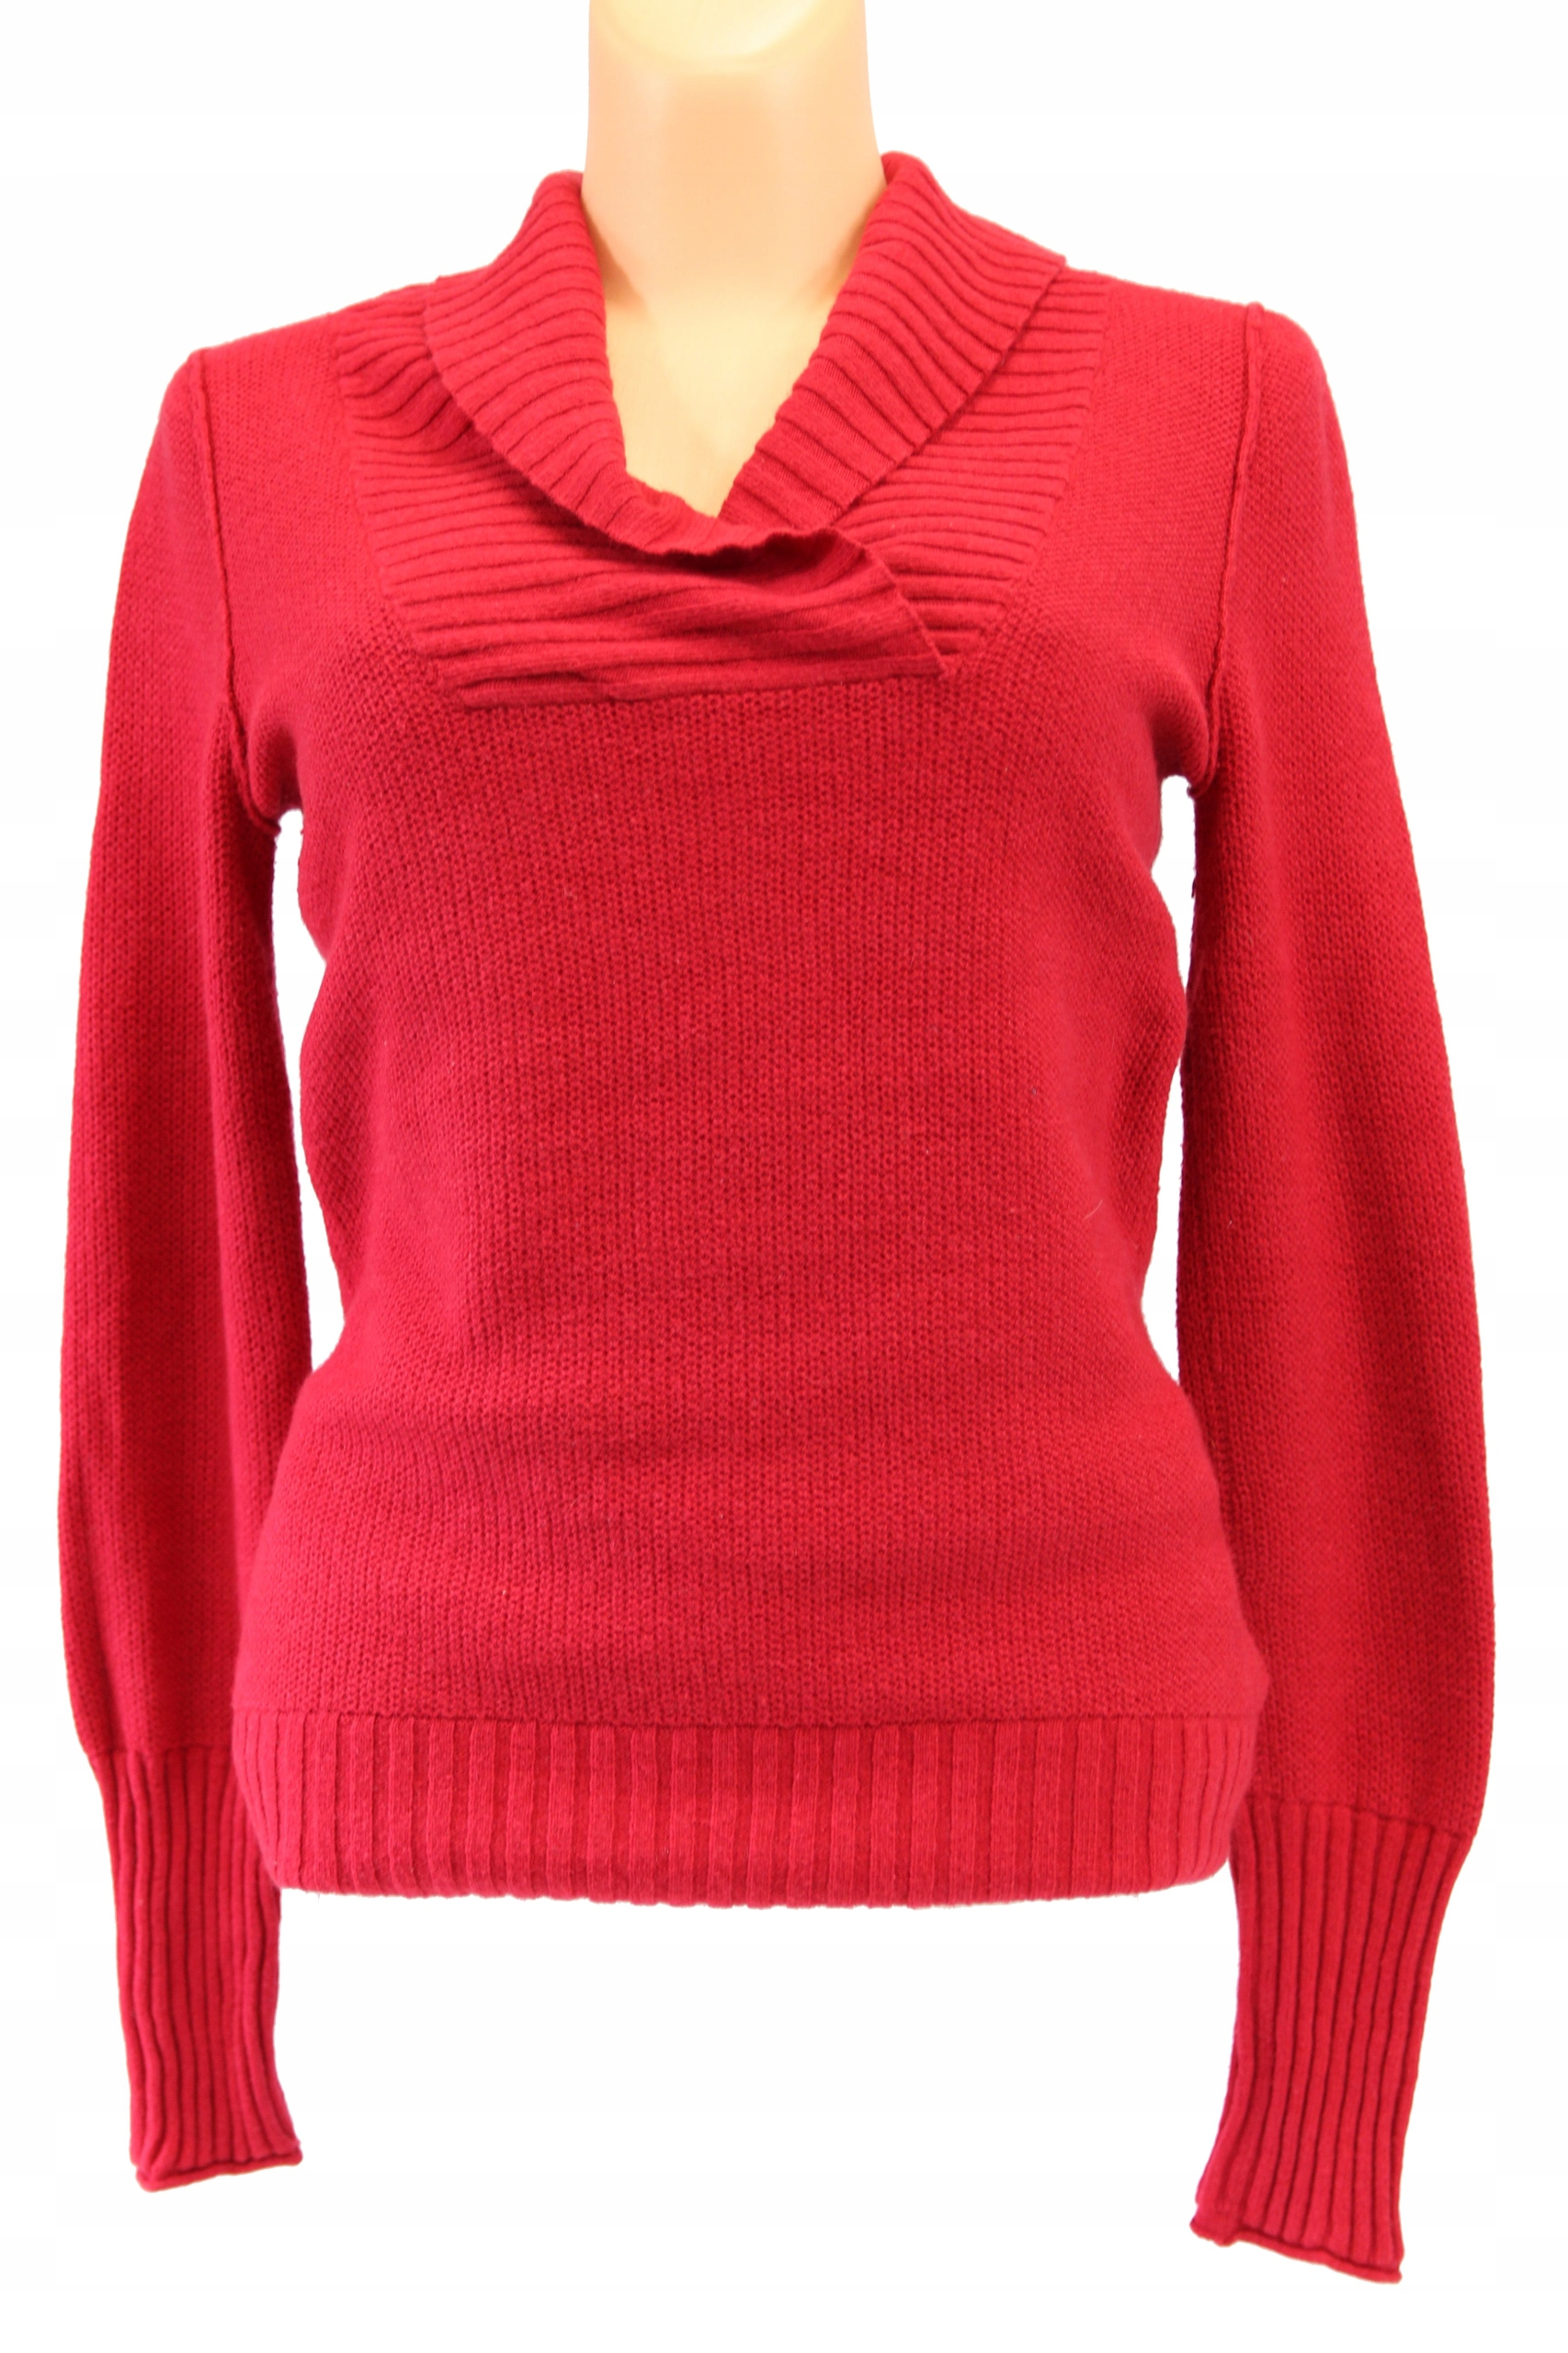 3e37a5f8f496d4 Sweter MOSSIMO SUPPLEY r 2XL 50 (T23) 7497285549 - Allegro.pl